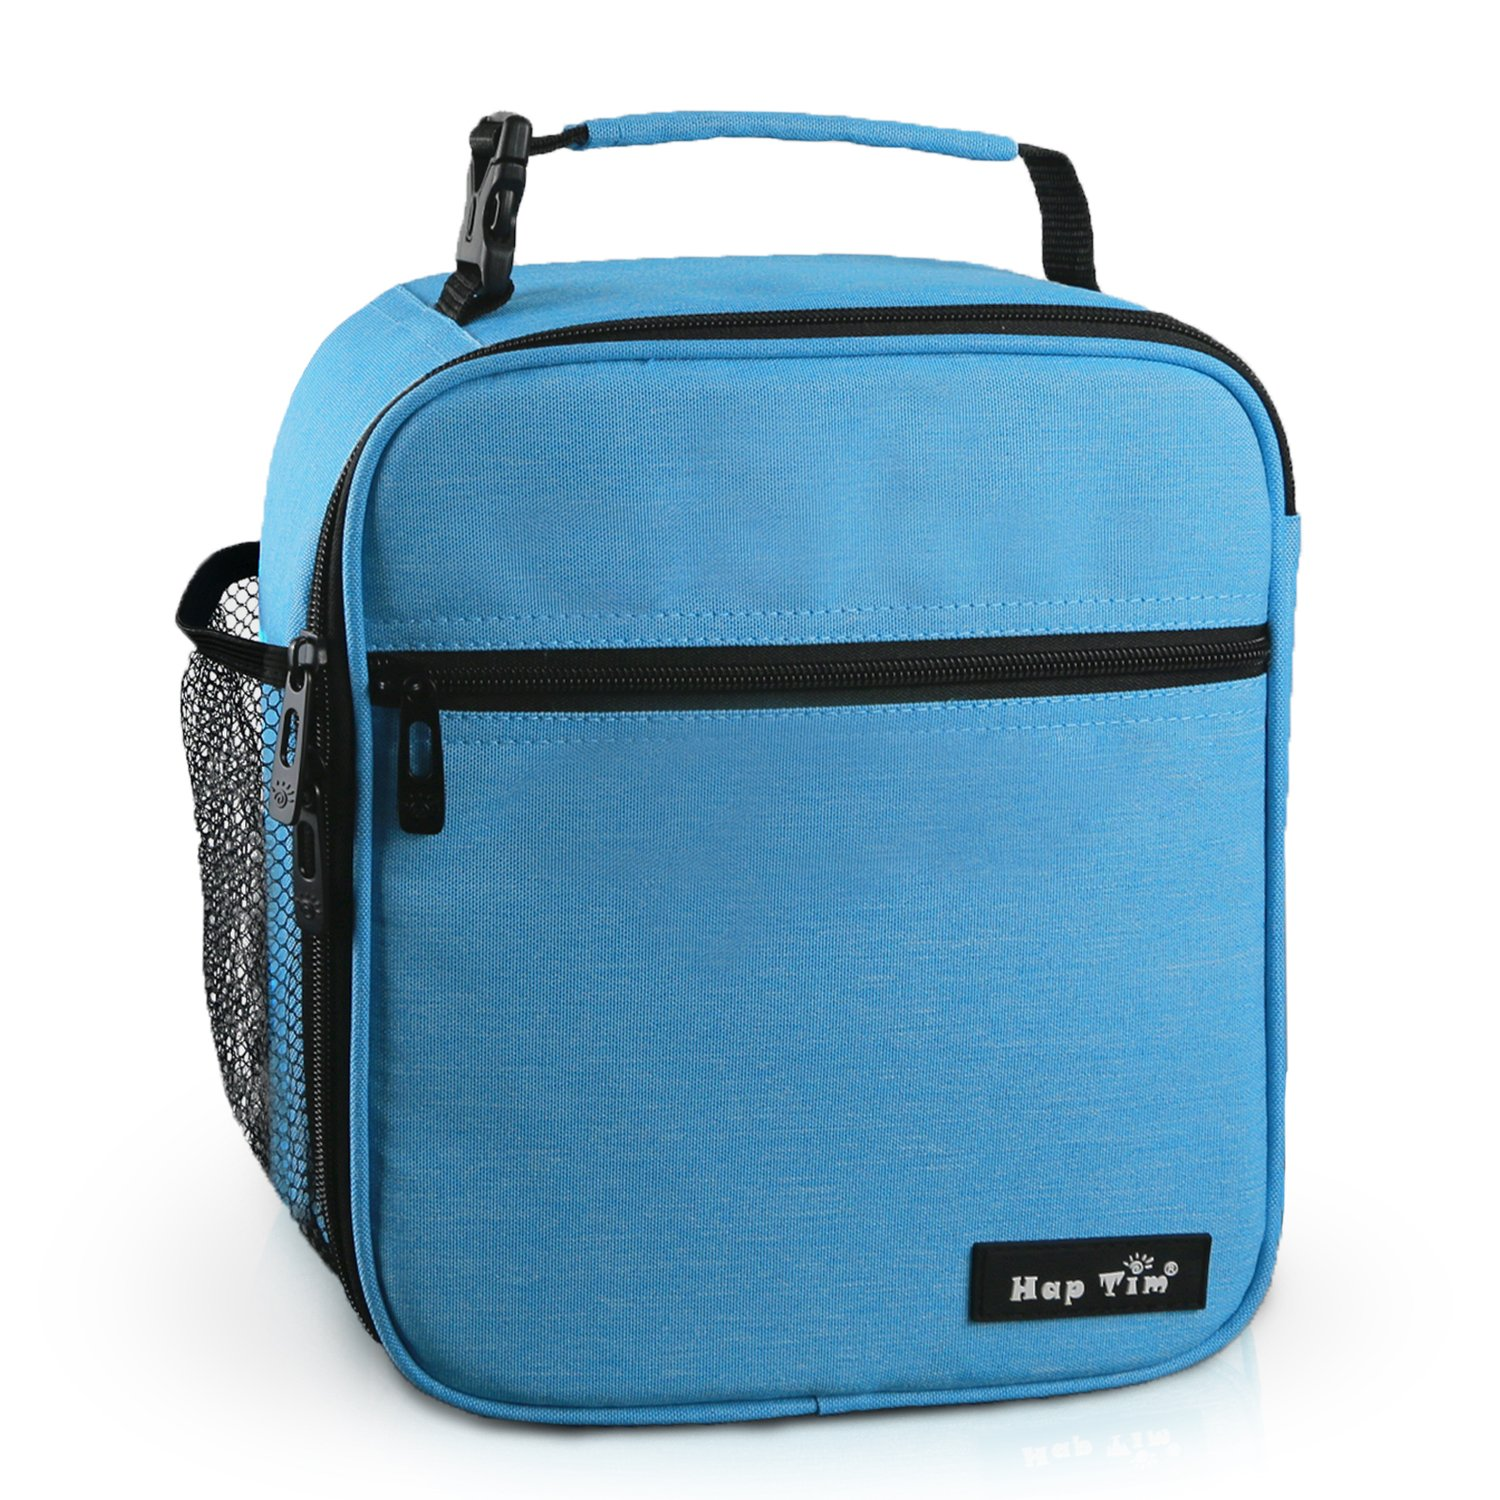 Hap Tim Insulated Lunch Bag for Men Women,Reusable Lunch Box for Boys,Spacious Lunchbox Adult (18654-BL) by Hap Tim